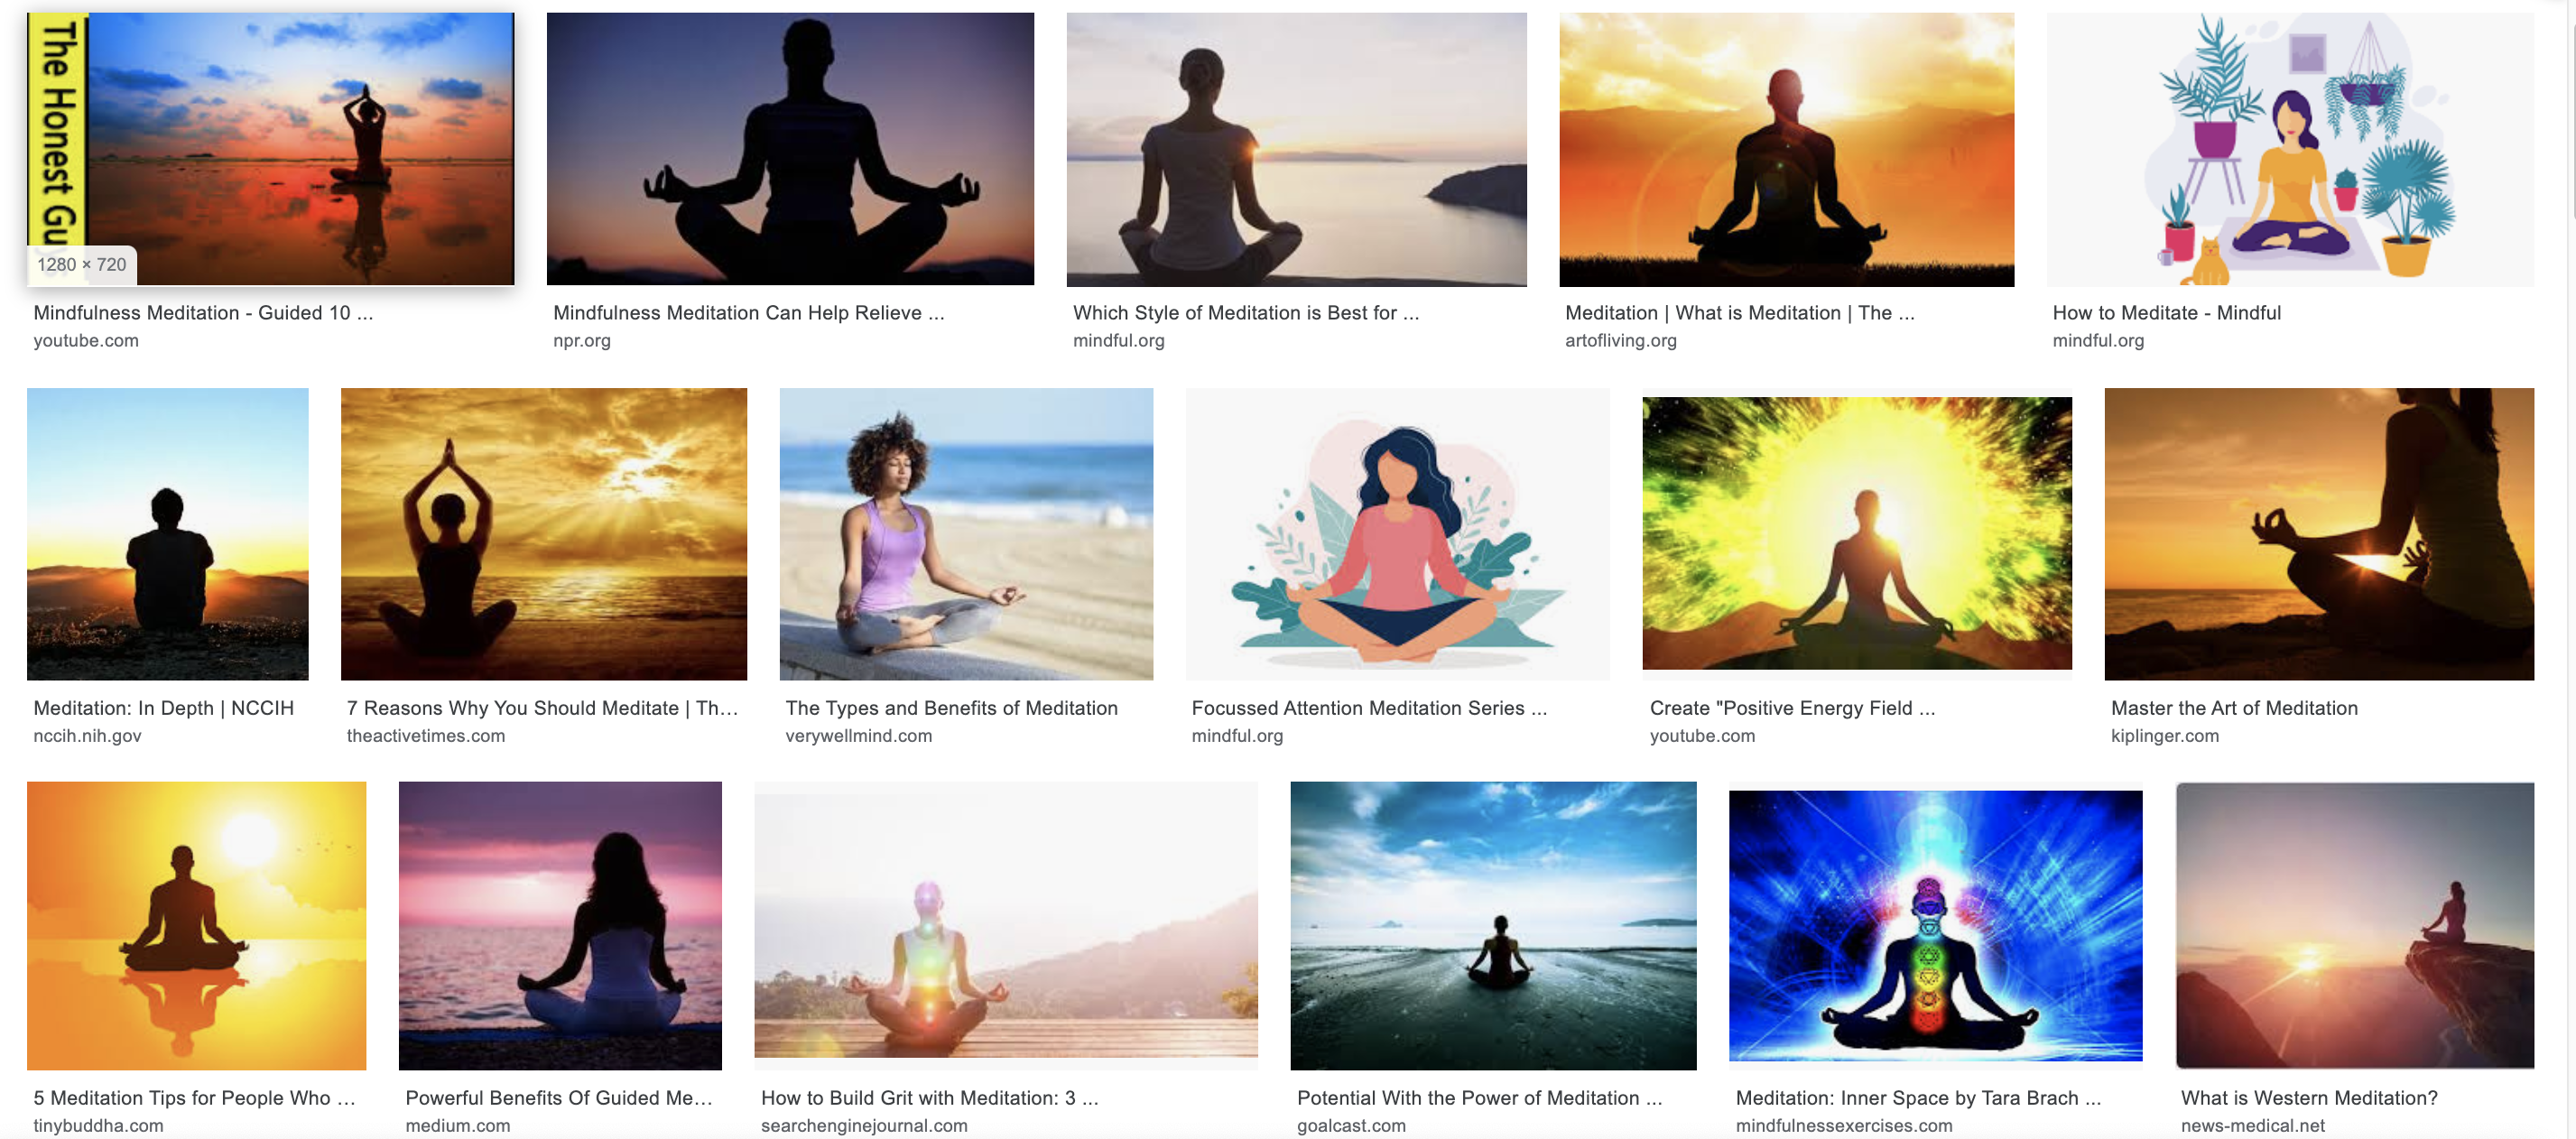 Google's result for meditation